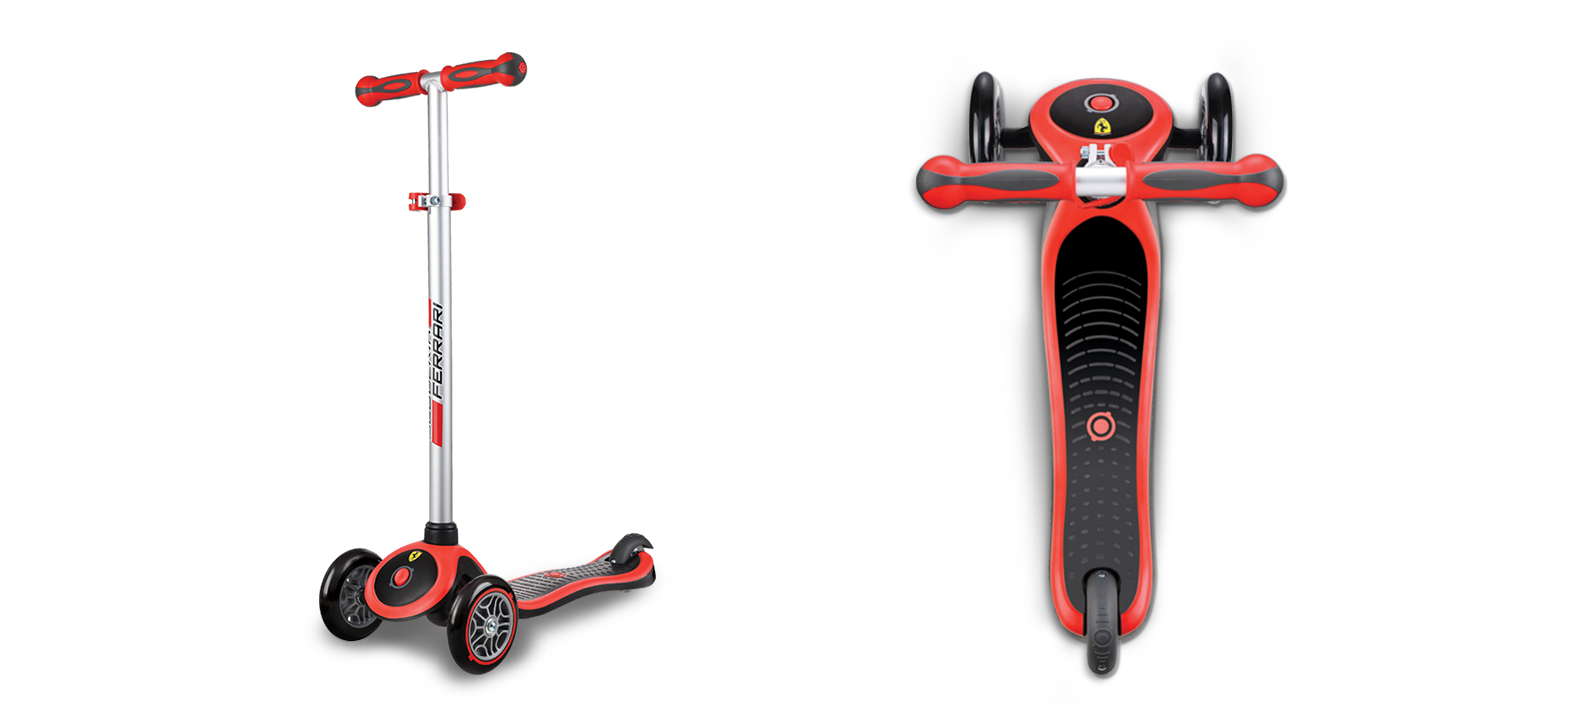 """Globber's PRIMO PLUS FERRARI kids scooter is for all Ferrari lovers! Globber's exclusive designed PRIMO PLUS Ferrari 3-wheel scooters for children is the coolest scooter for kids to play on for hours of fun and usage! PRIMO PLUS FERRARI adjustable scooter is suitable for kids aged 3+ to 9+. """